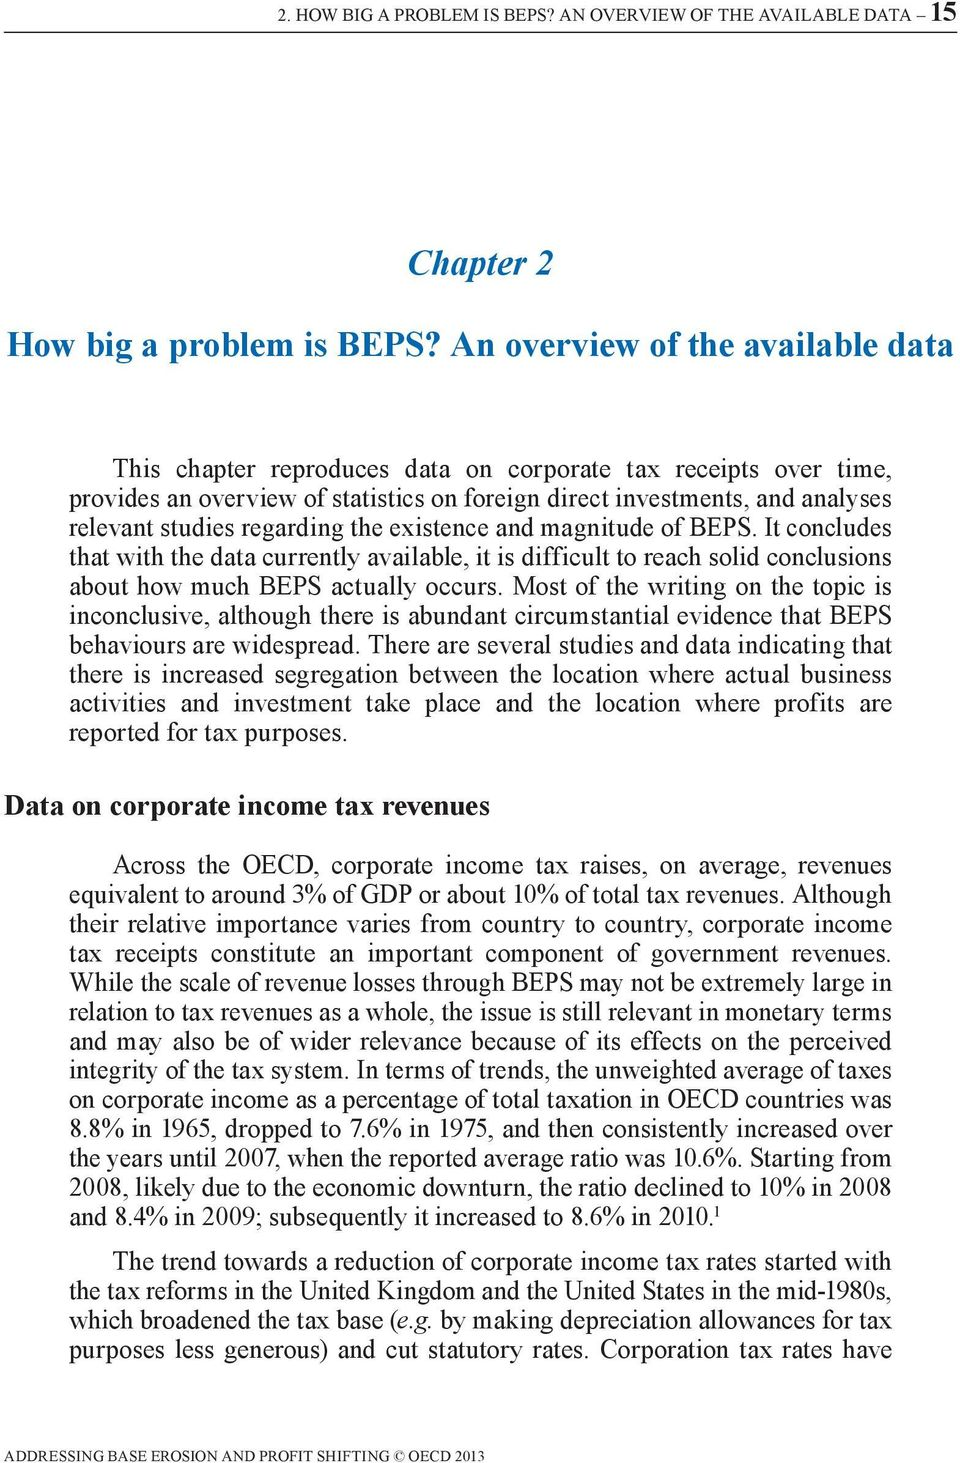 regarding the existence and magnitude of BEPS. It concludes that with the data currently available, it is difficult to reach solid conclusions about how much BEPS actually occurs.